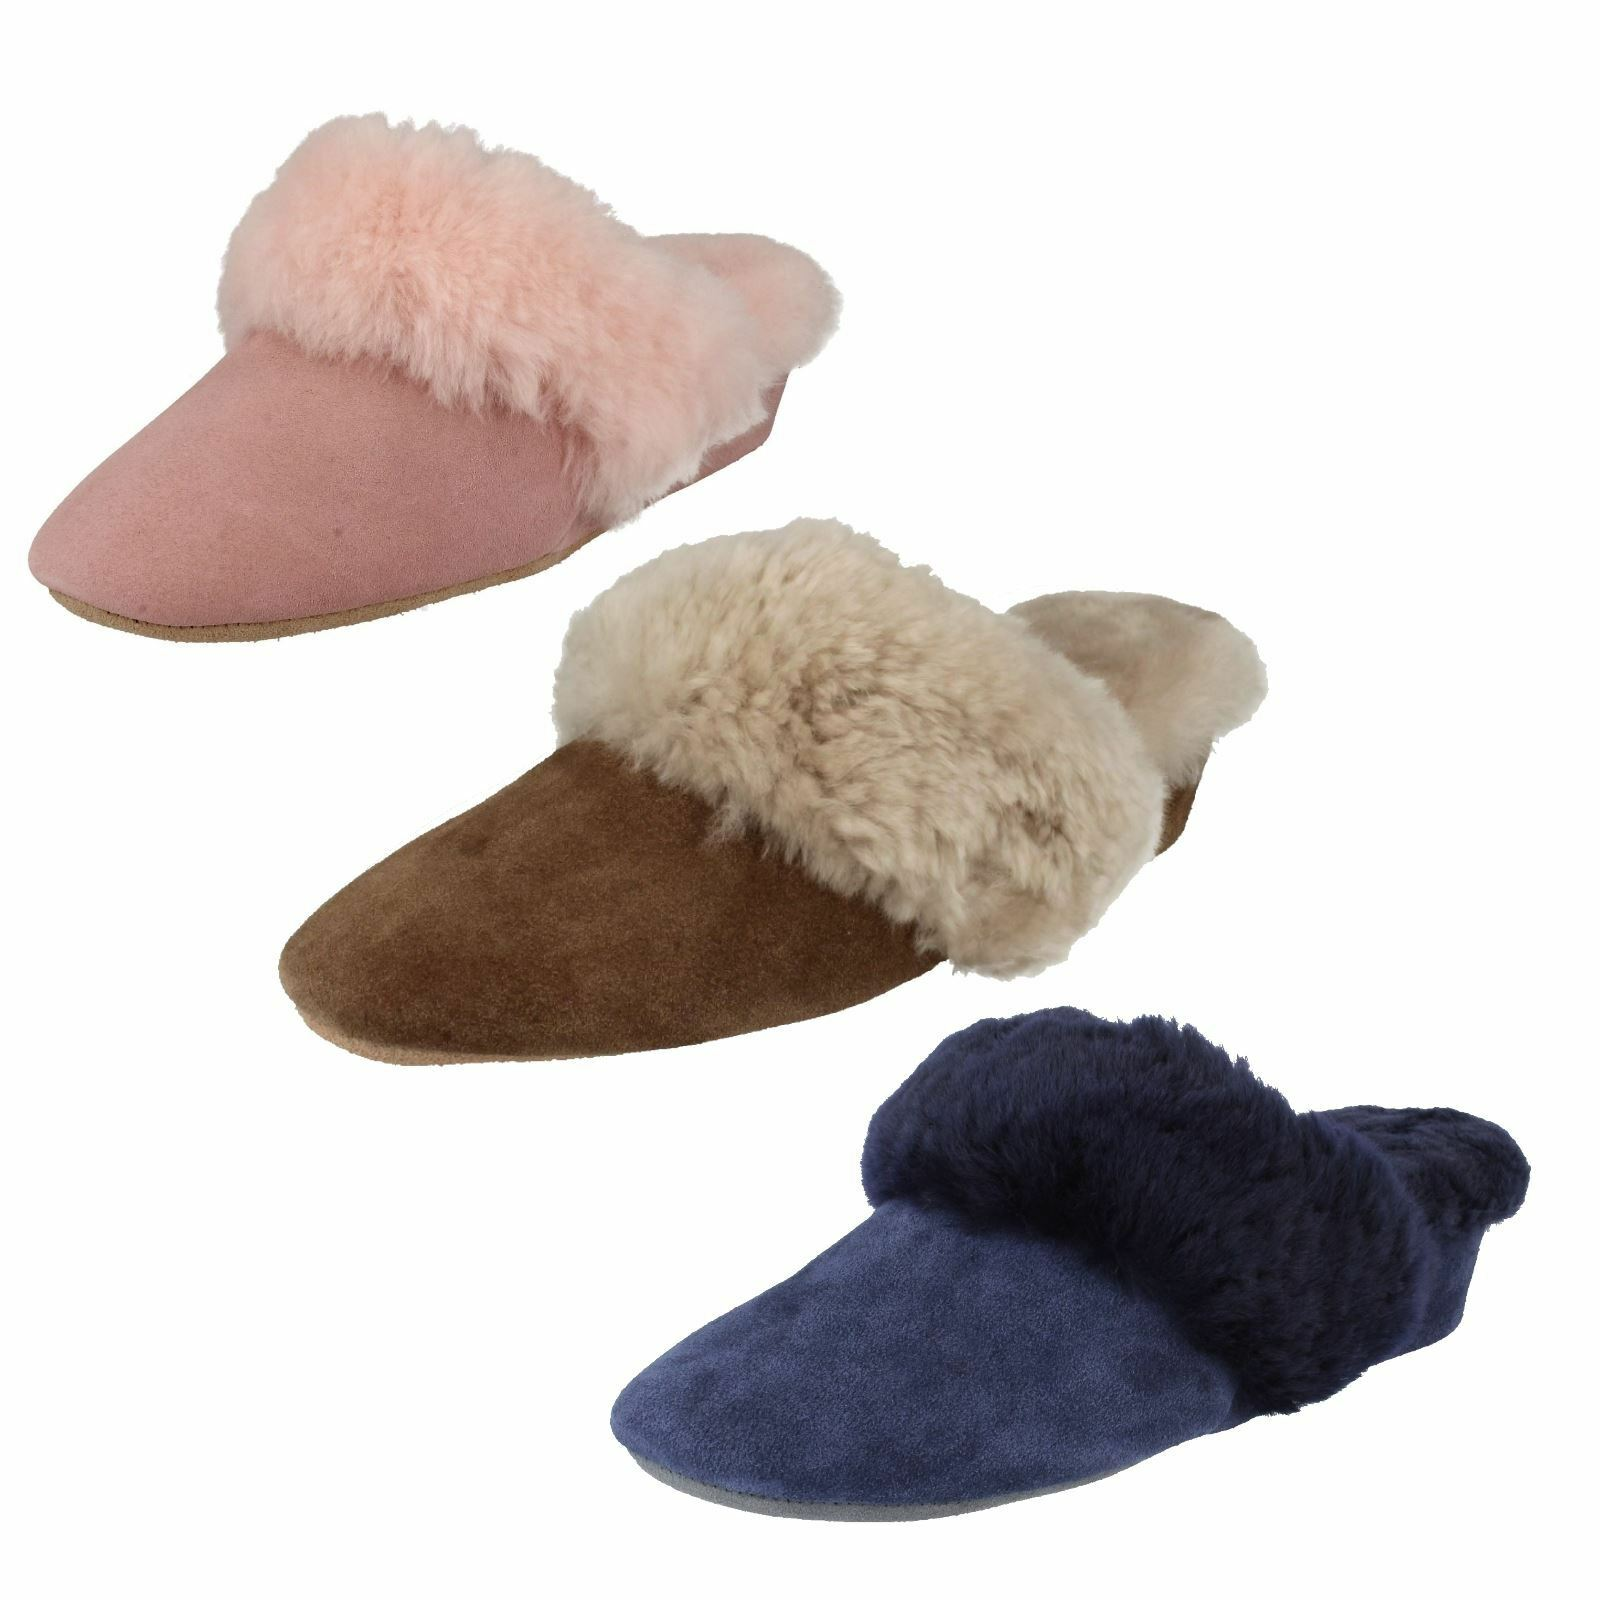 Mr/Ms Beautiful Ladies Morlands Slippers 'Moffat' Beautiful Mr/Ms color New style Exquisite processing d1805a